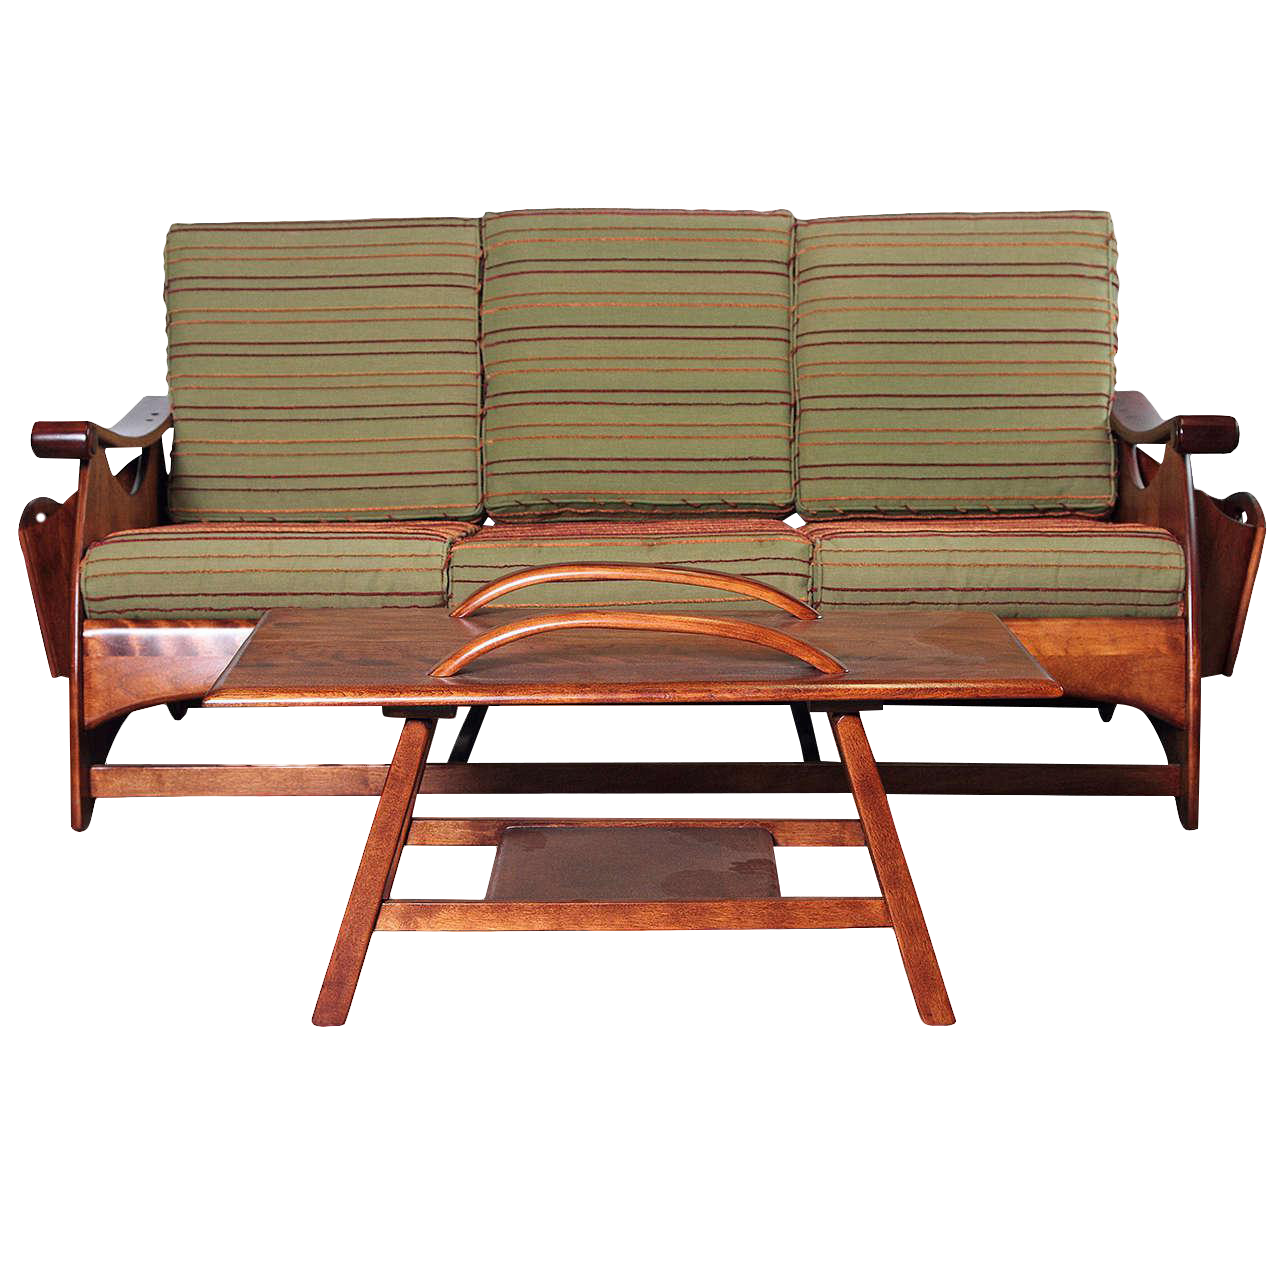 Sophisticated Gilbert Rohde Art Deco Sofa And Coffee Table For